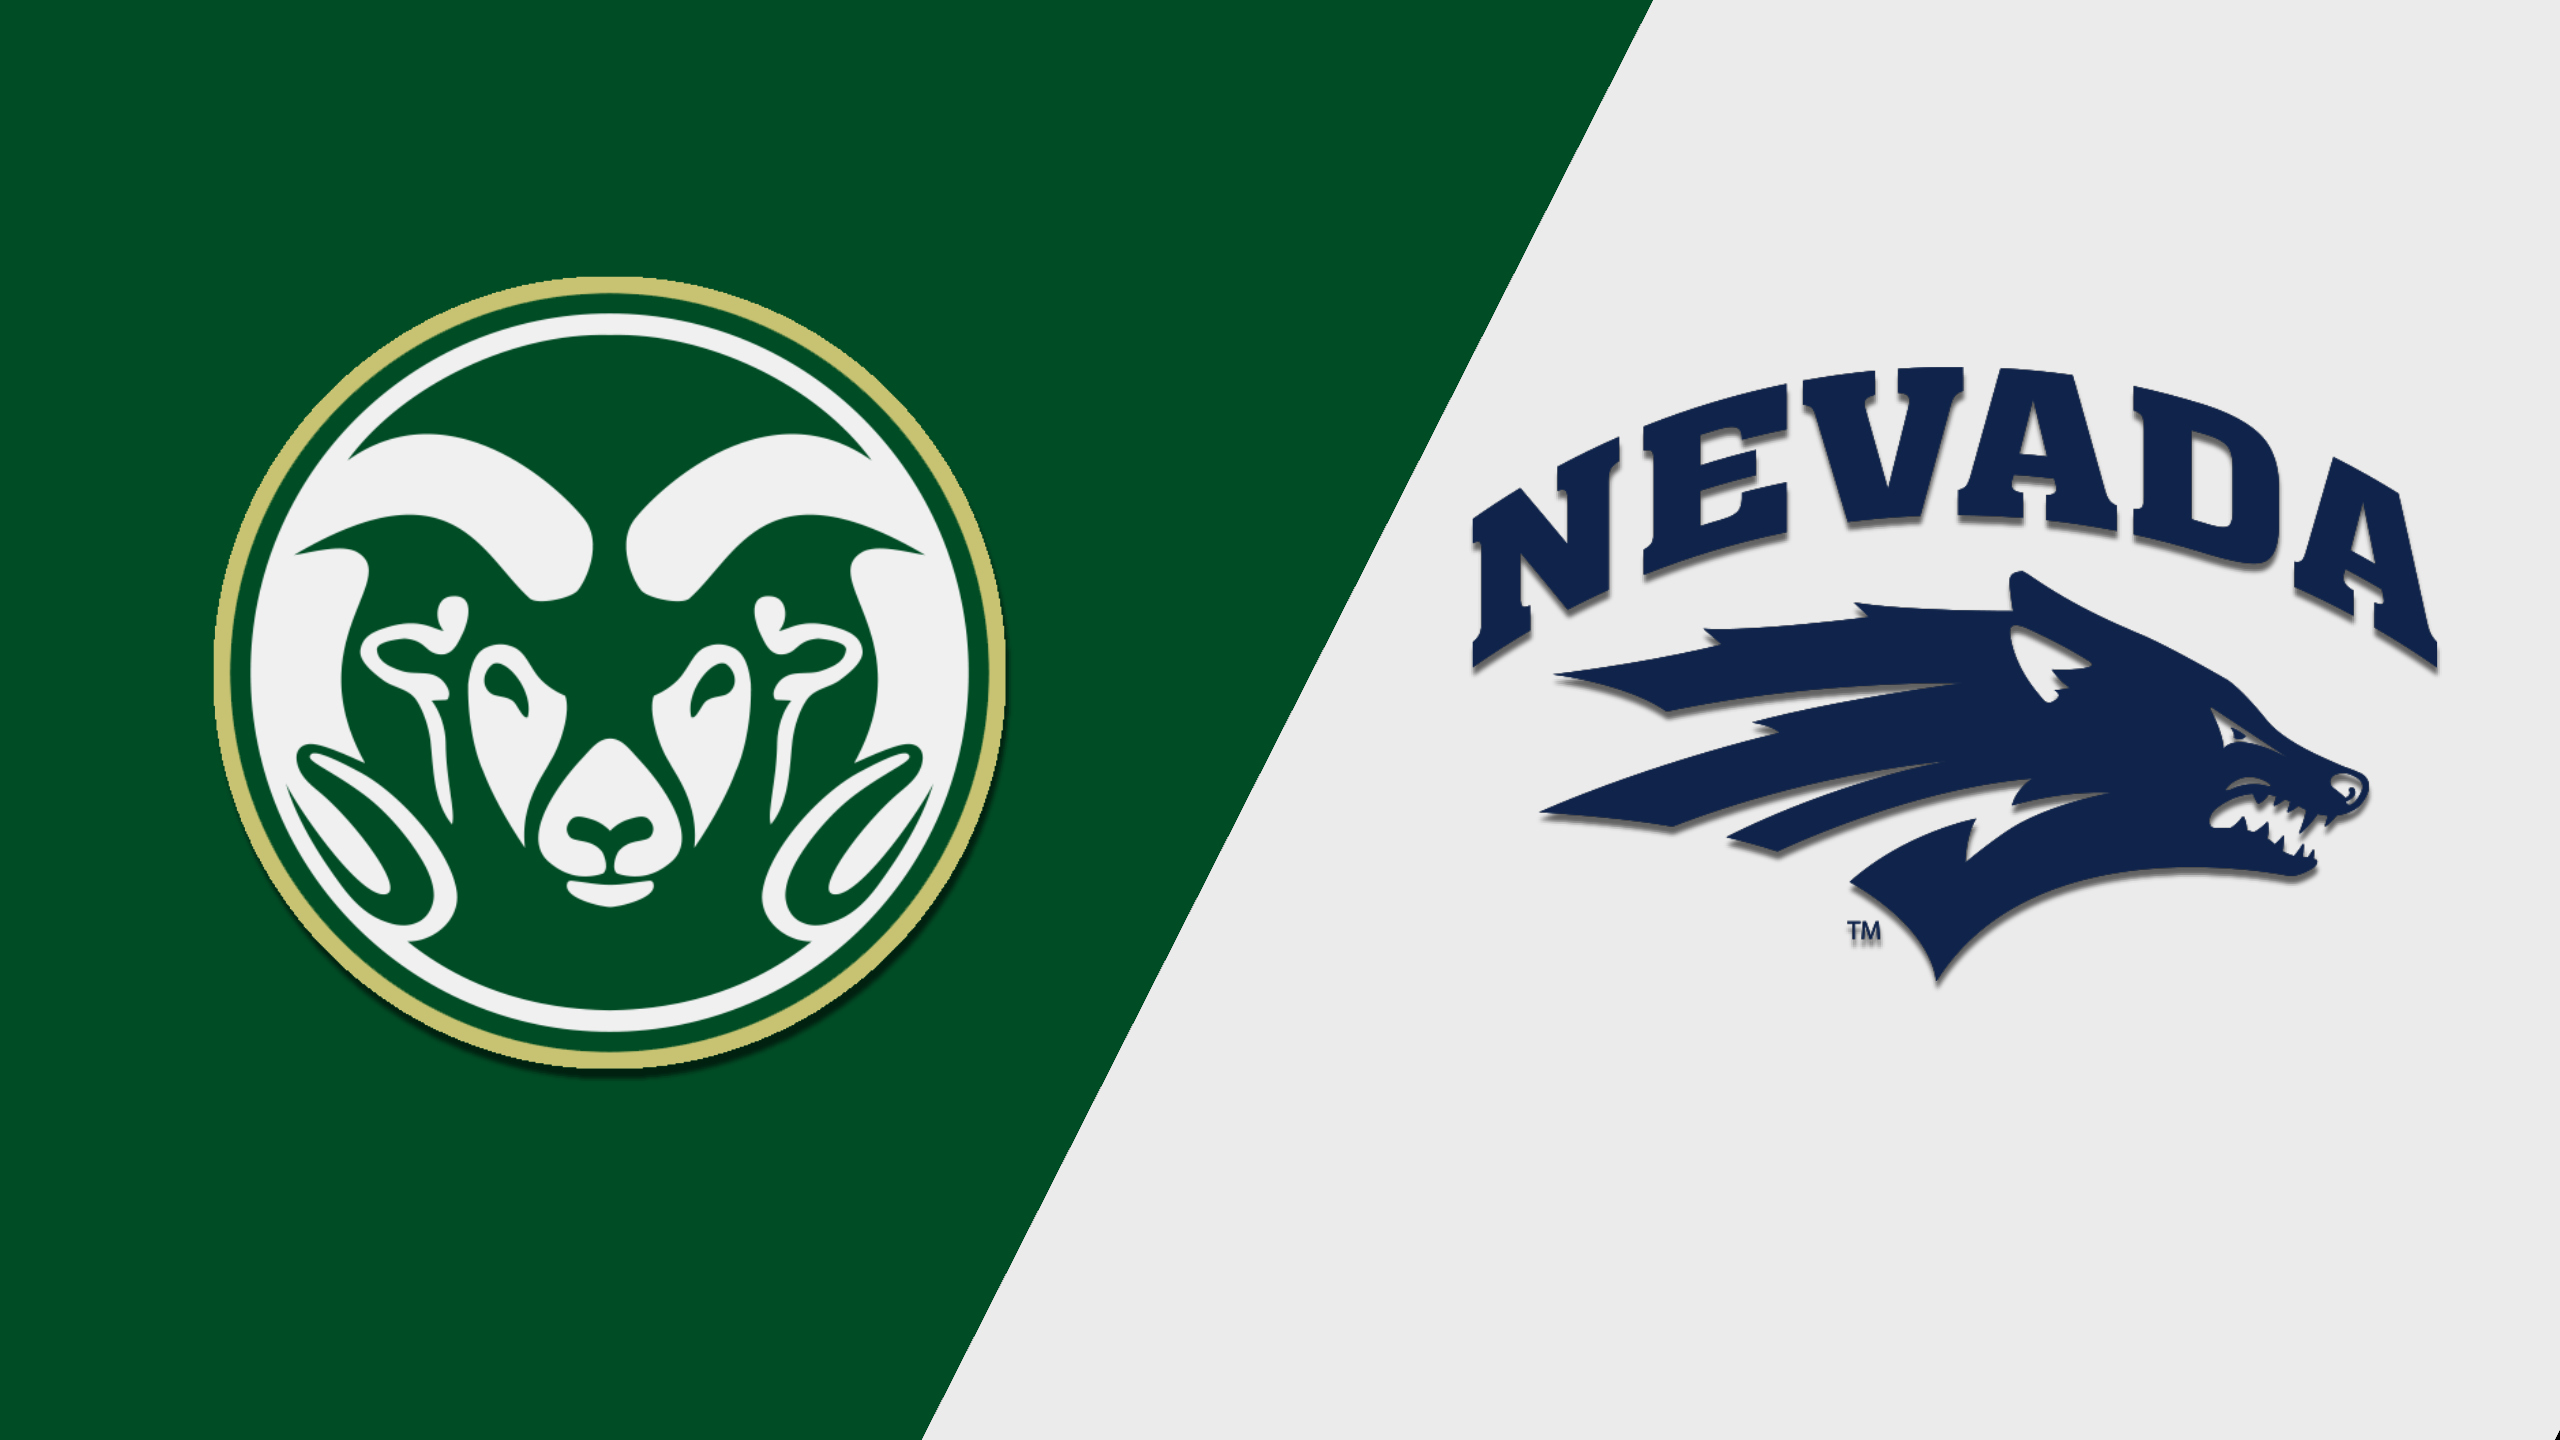 Colorado State vs. Nevada (Football) (re-air)